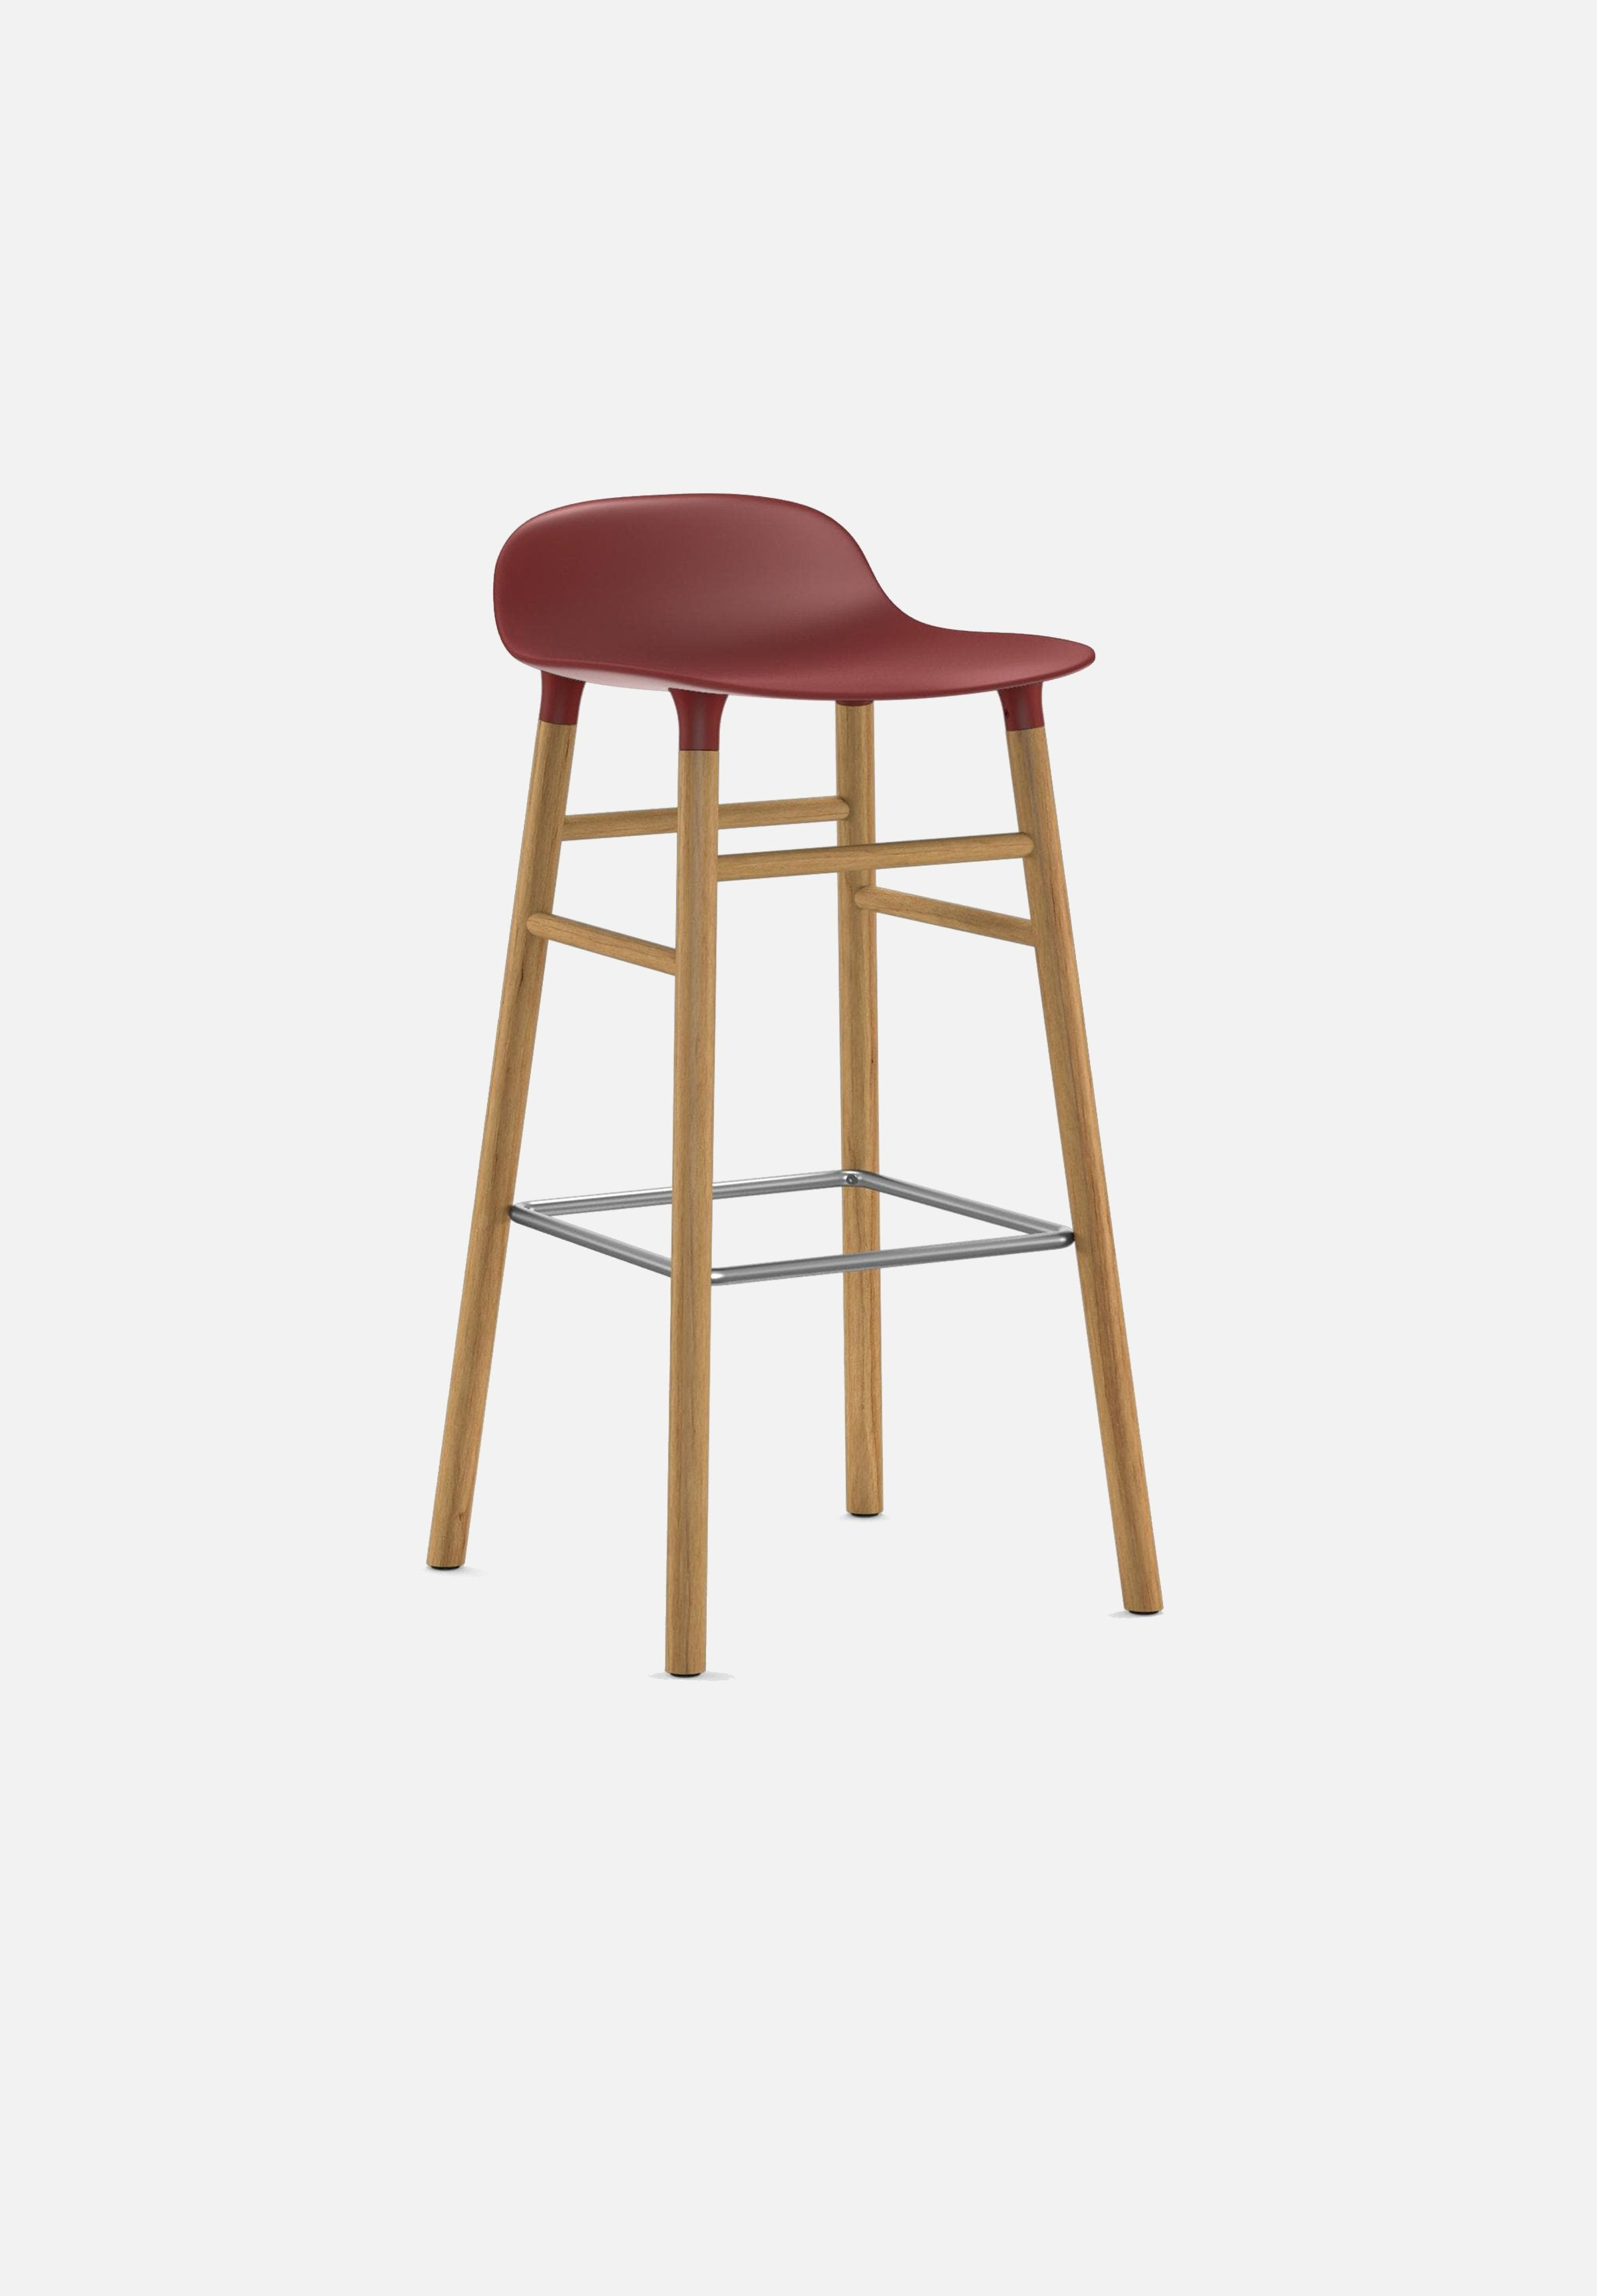 Form Stool — 75cm-Simon Legald-Normann Copenhagen-Red-Solid Oak-Average-canada-design-store-danish-denmark-furniture-interior